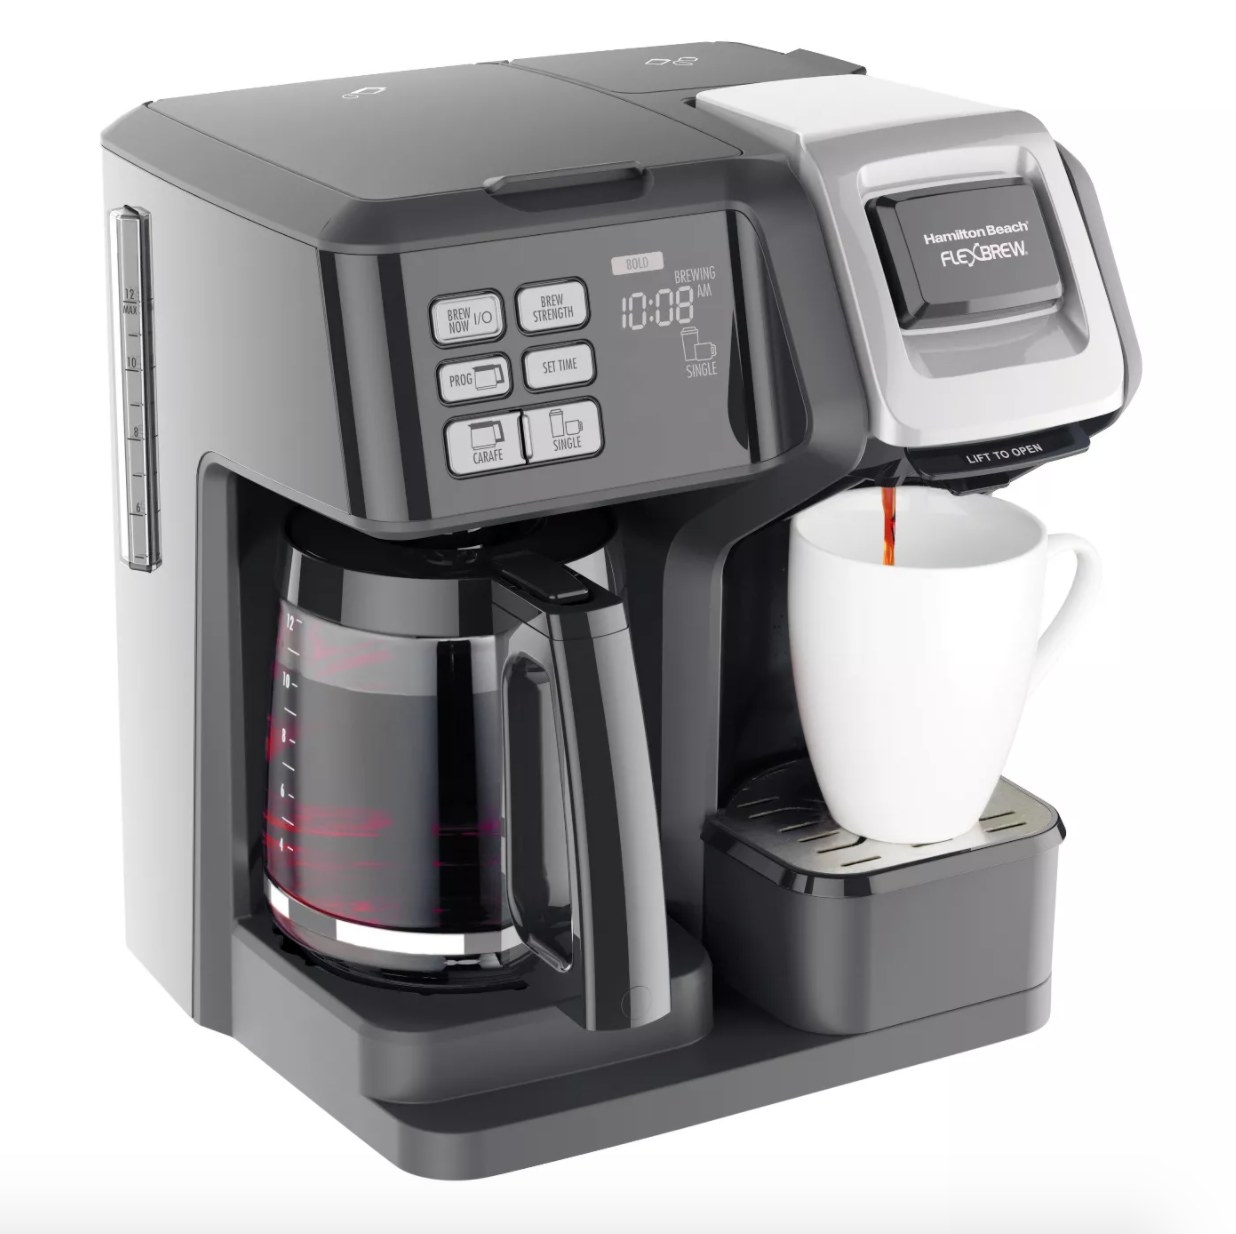 A coffee maker with two options for a full pot and the single-cup brewing